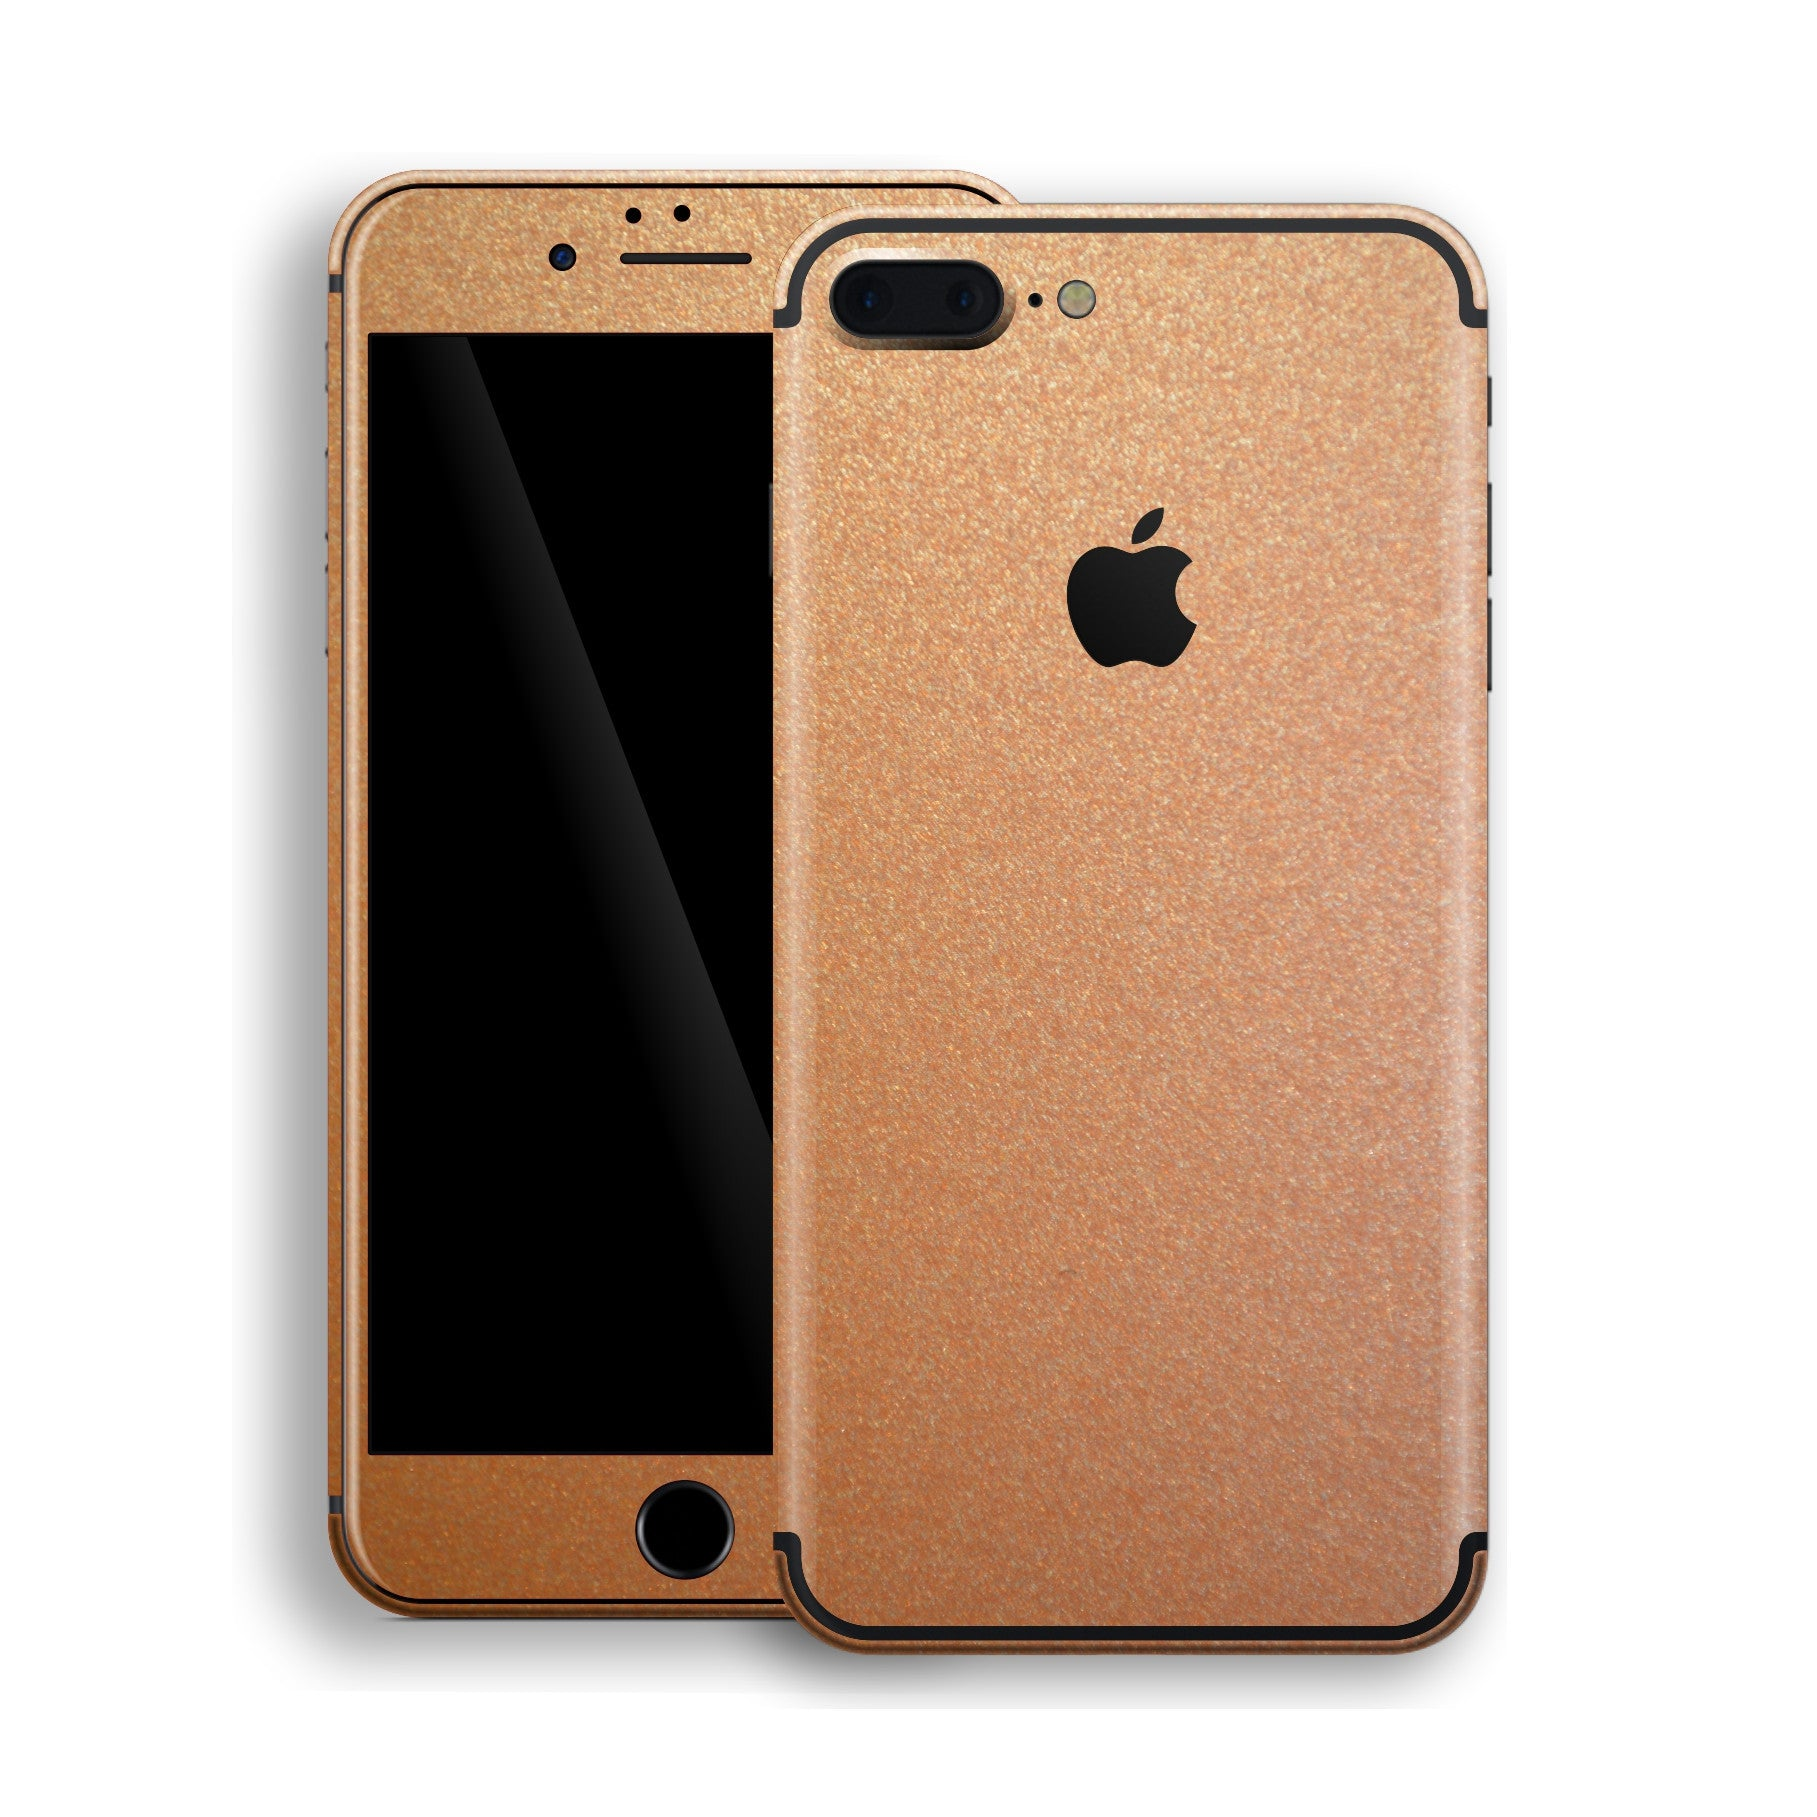 iPhone 7 Plus Copper Matt Metallic Skin, Decal, Wrap, Protector, Cover by EasySkinz | EasySkinz.com